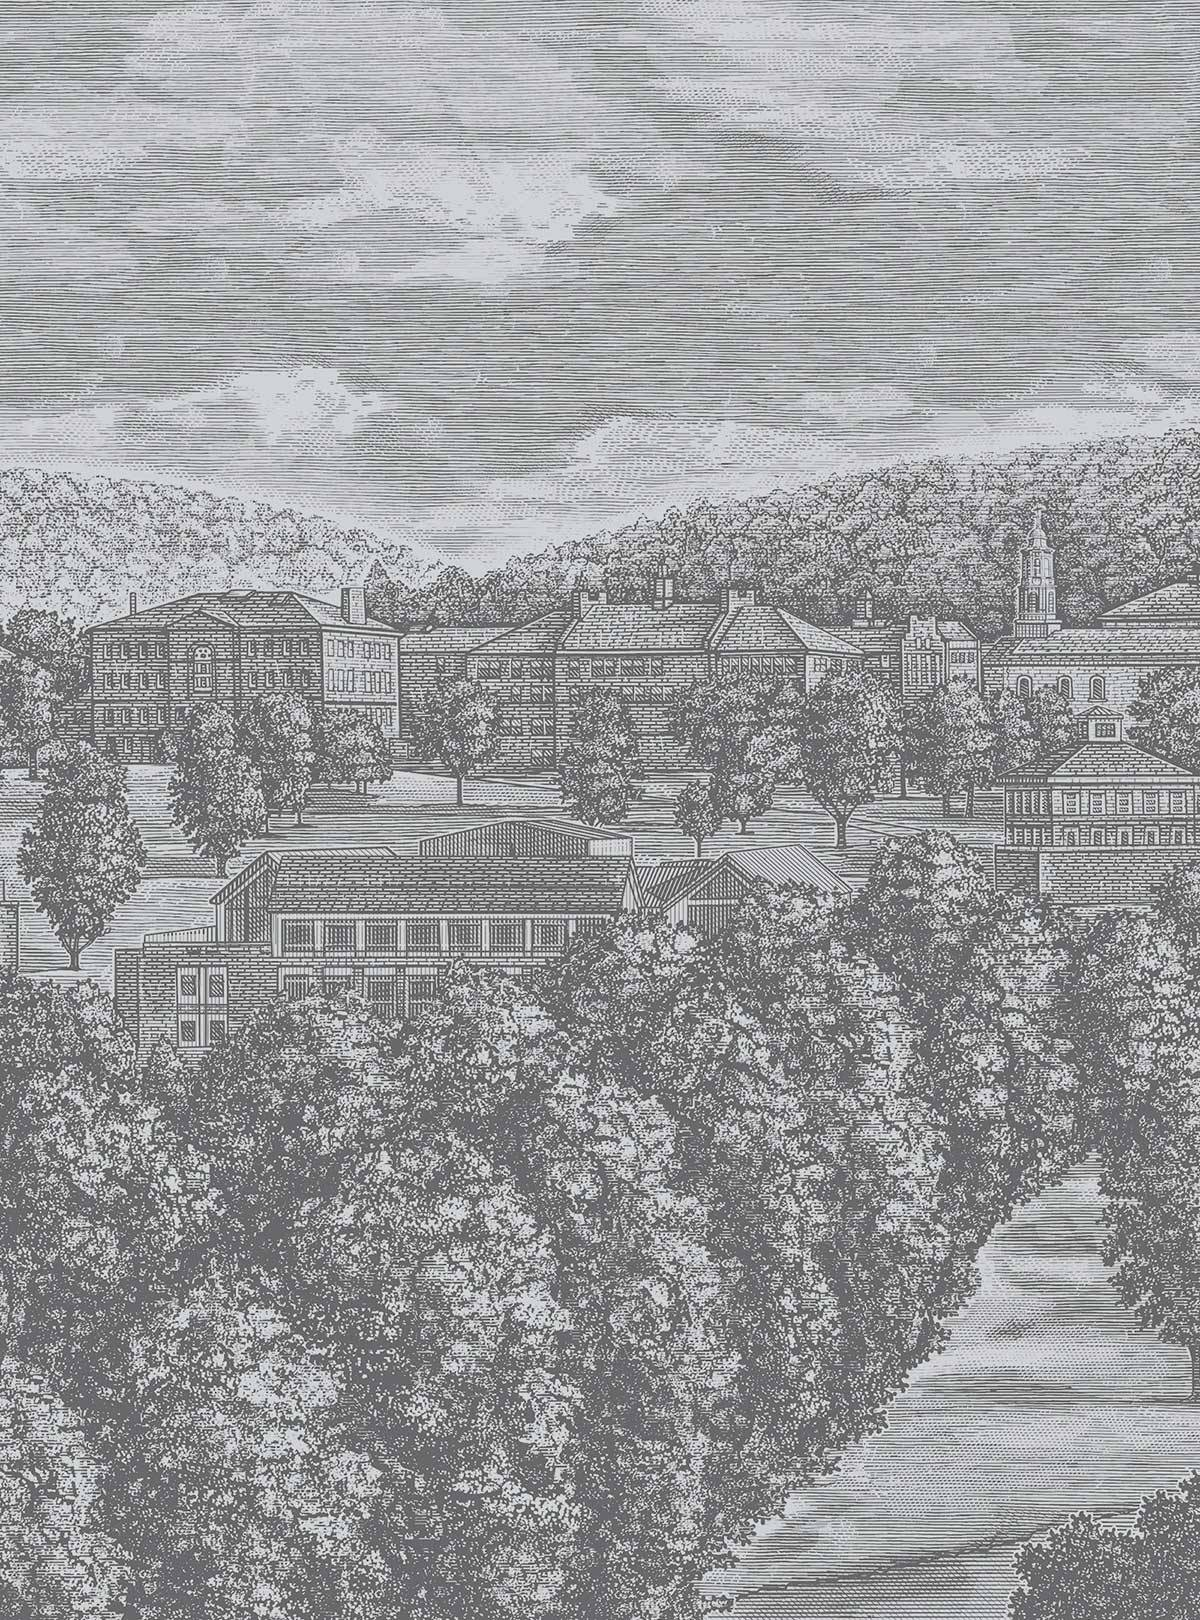 Woodcut style illustration of the Colgate campus